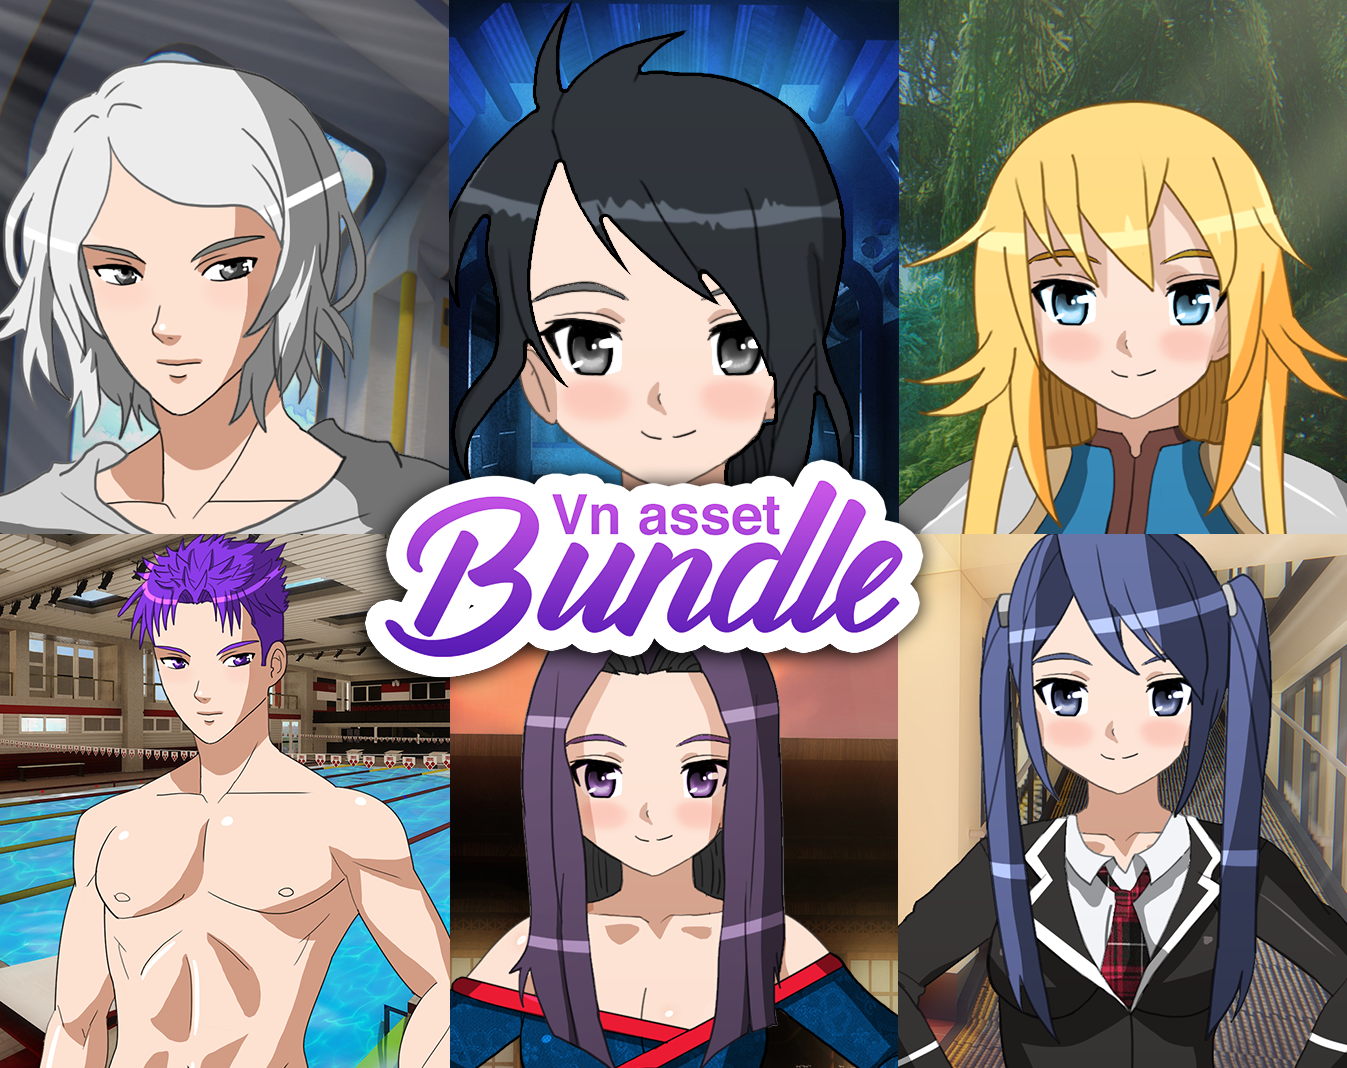 VN asset bundle